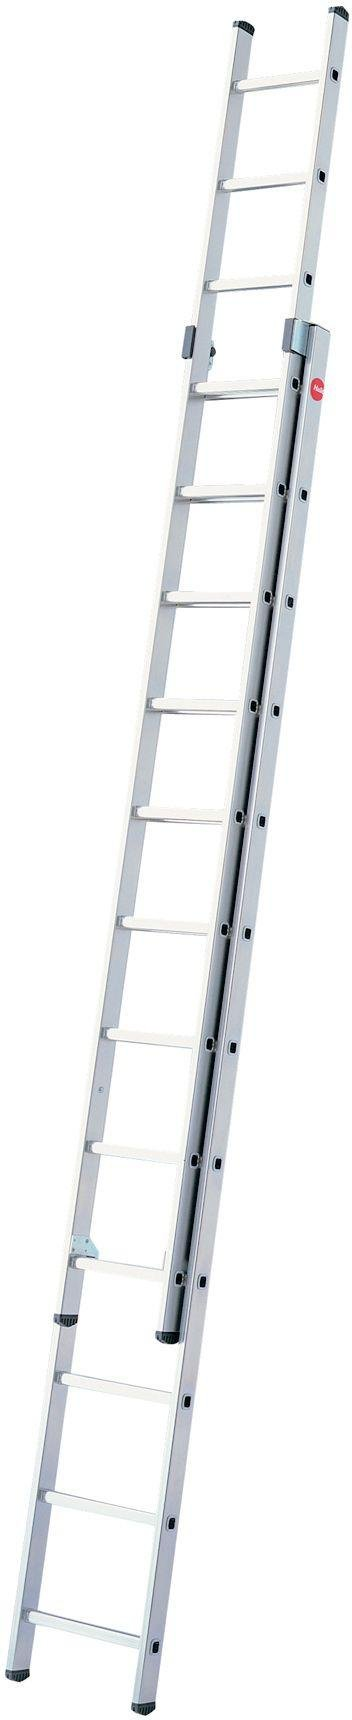 Profistep 12 Rung Double Extension Ladder lowest price